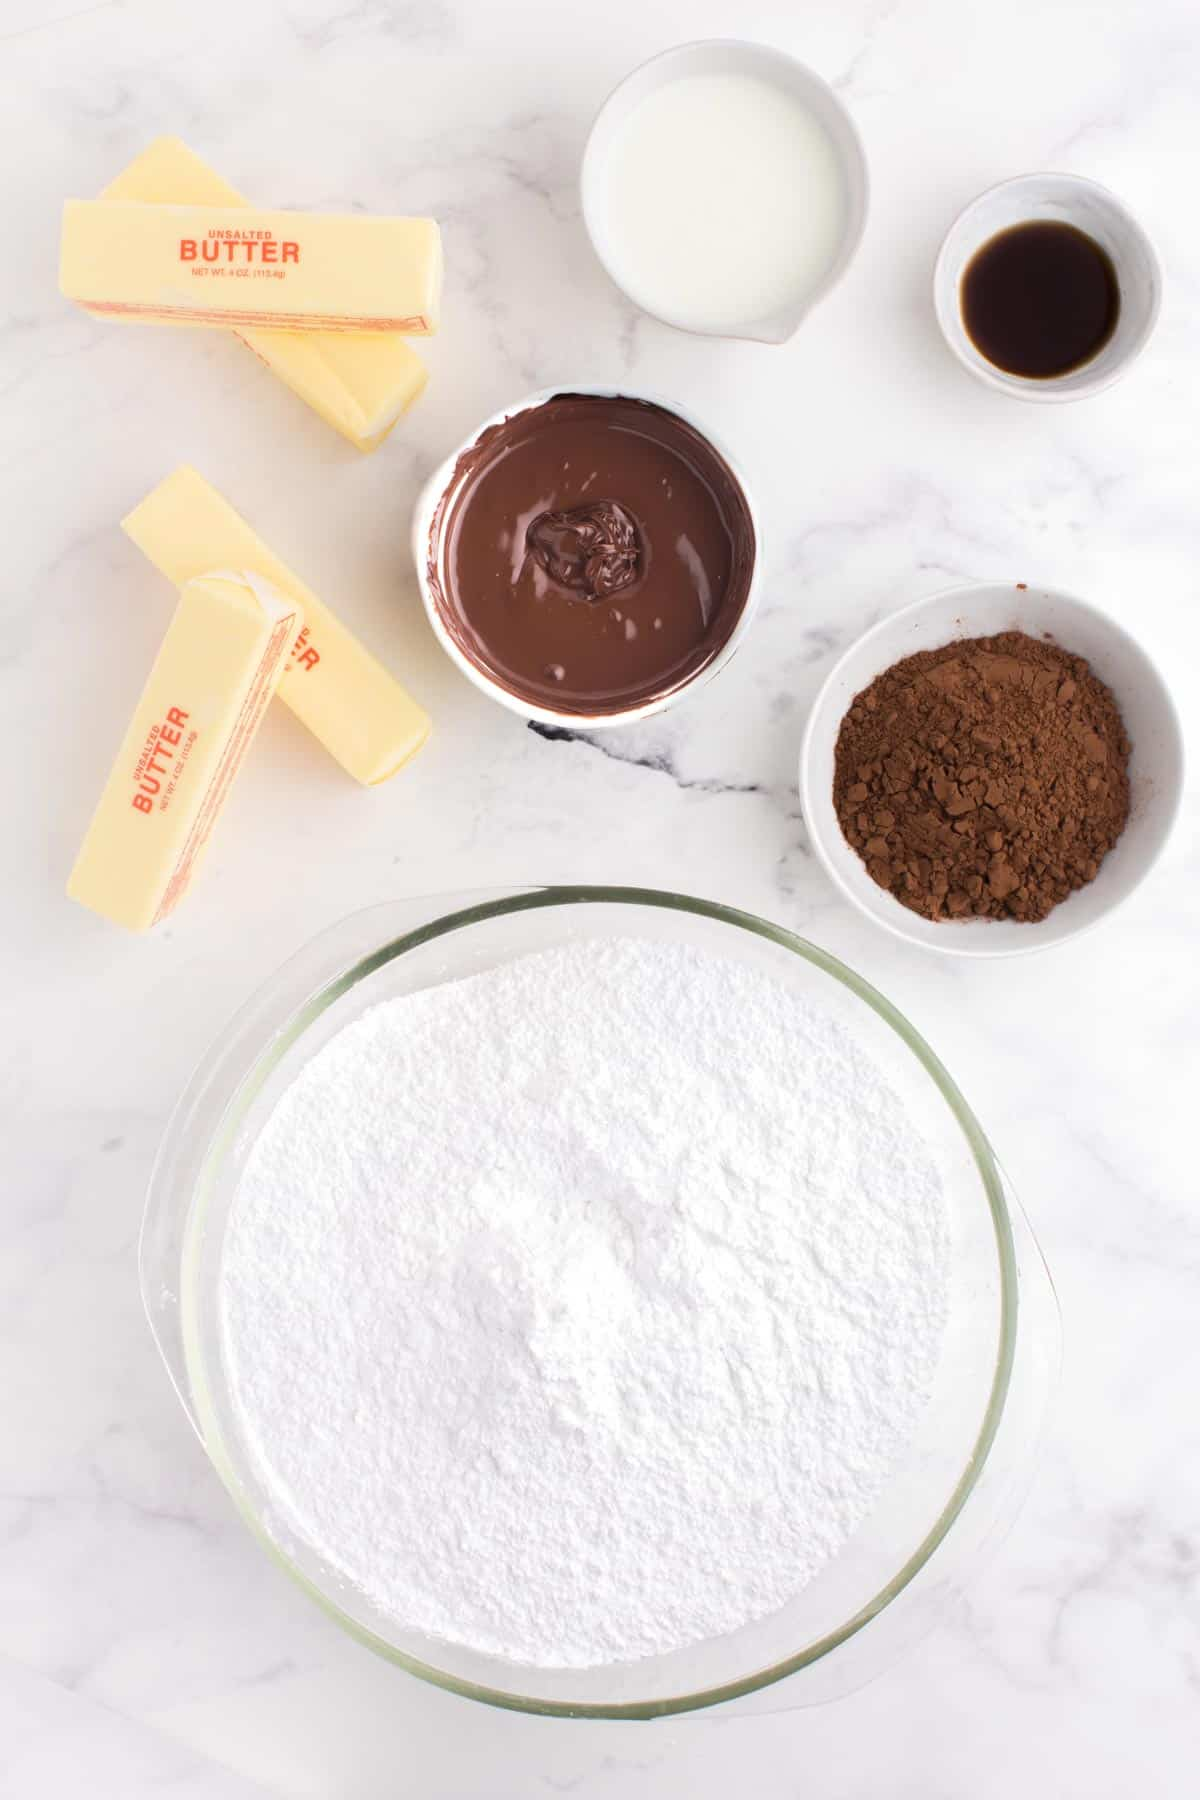 Four sticks of butter plus bowls of powdered sugar, cocoa powder, melted chocolate, vanilla extract, and buttermilk